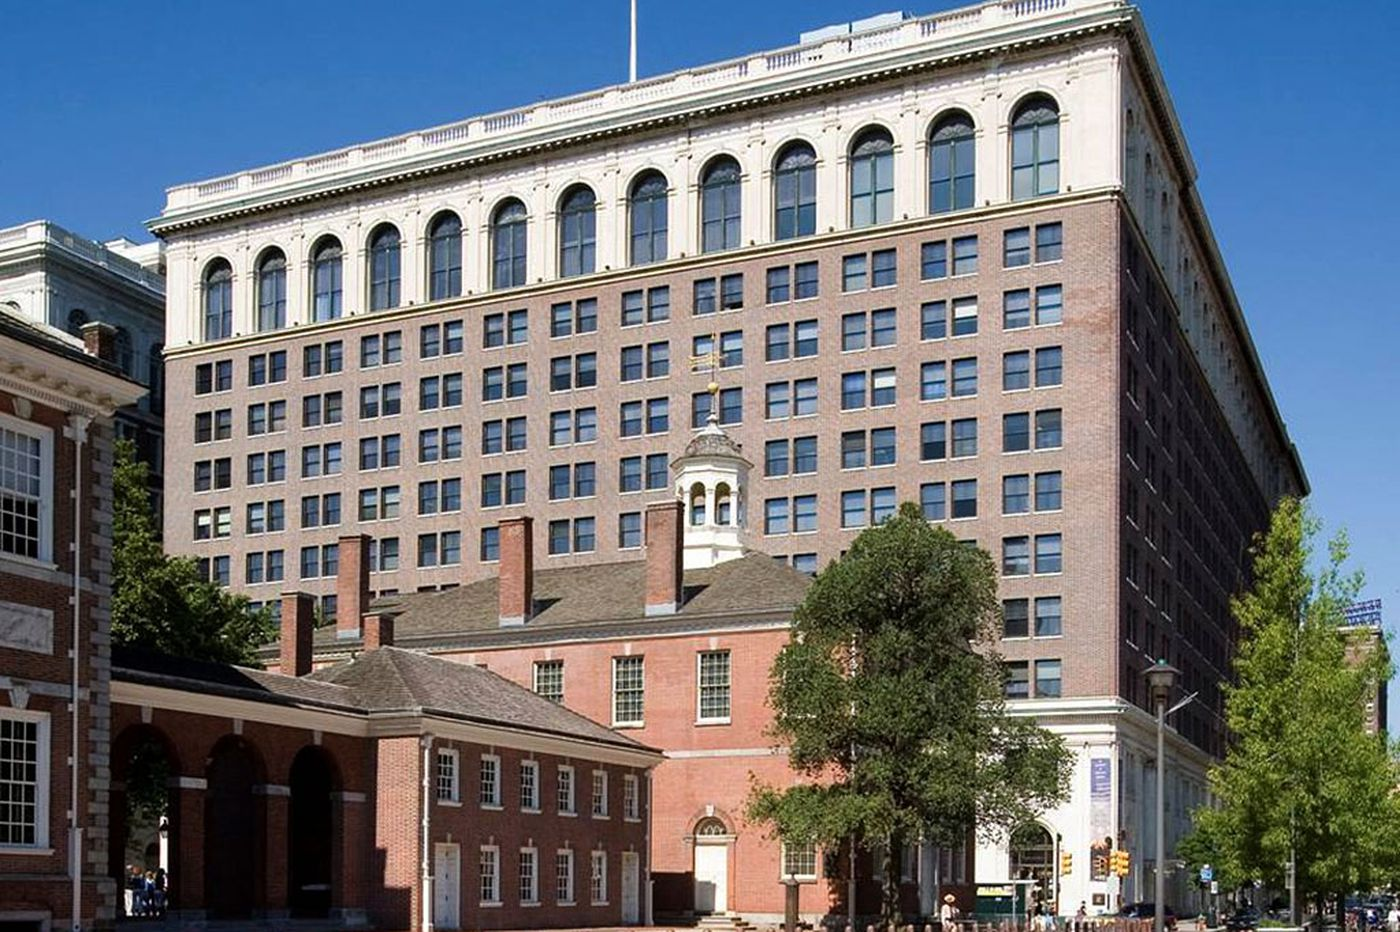 Portion of historic Public Ledger building to be revamped into upscale extended-stay hotel